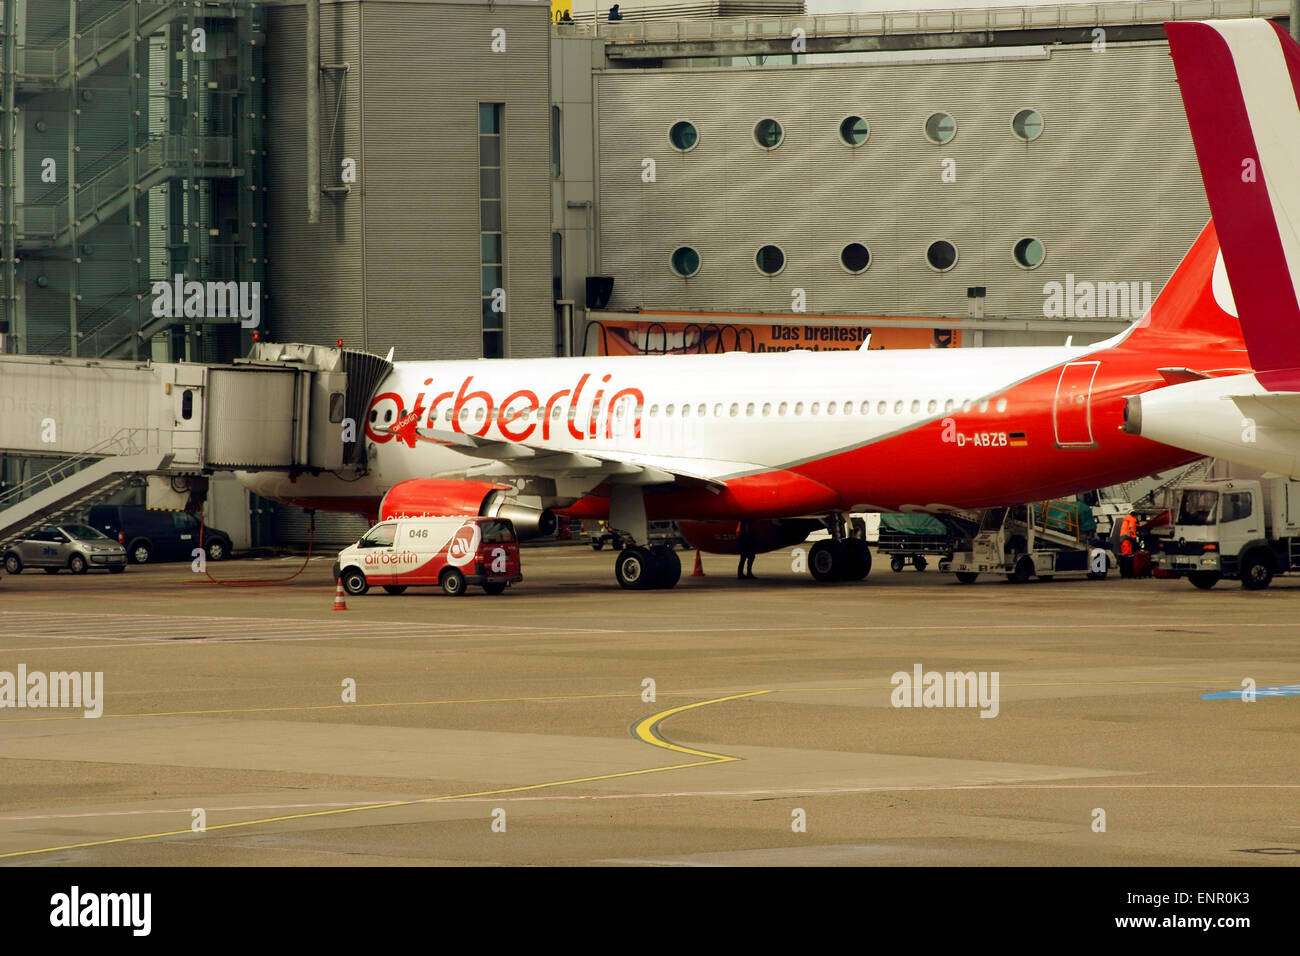 Airliner by Airberlin - Stock Image